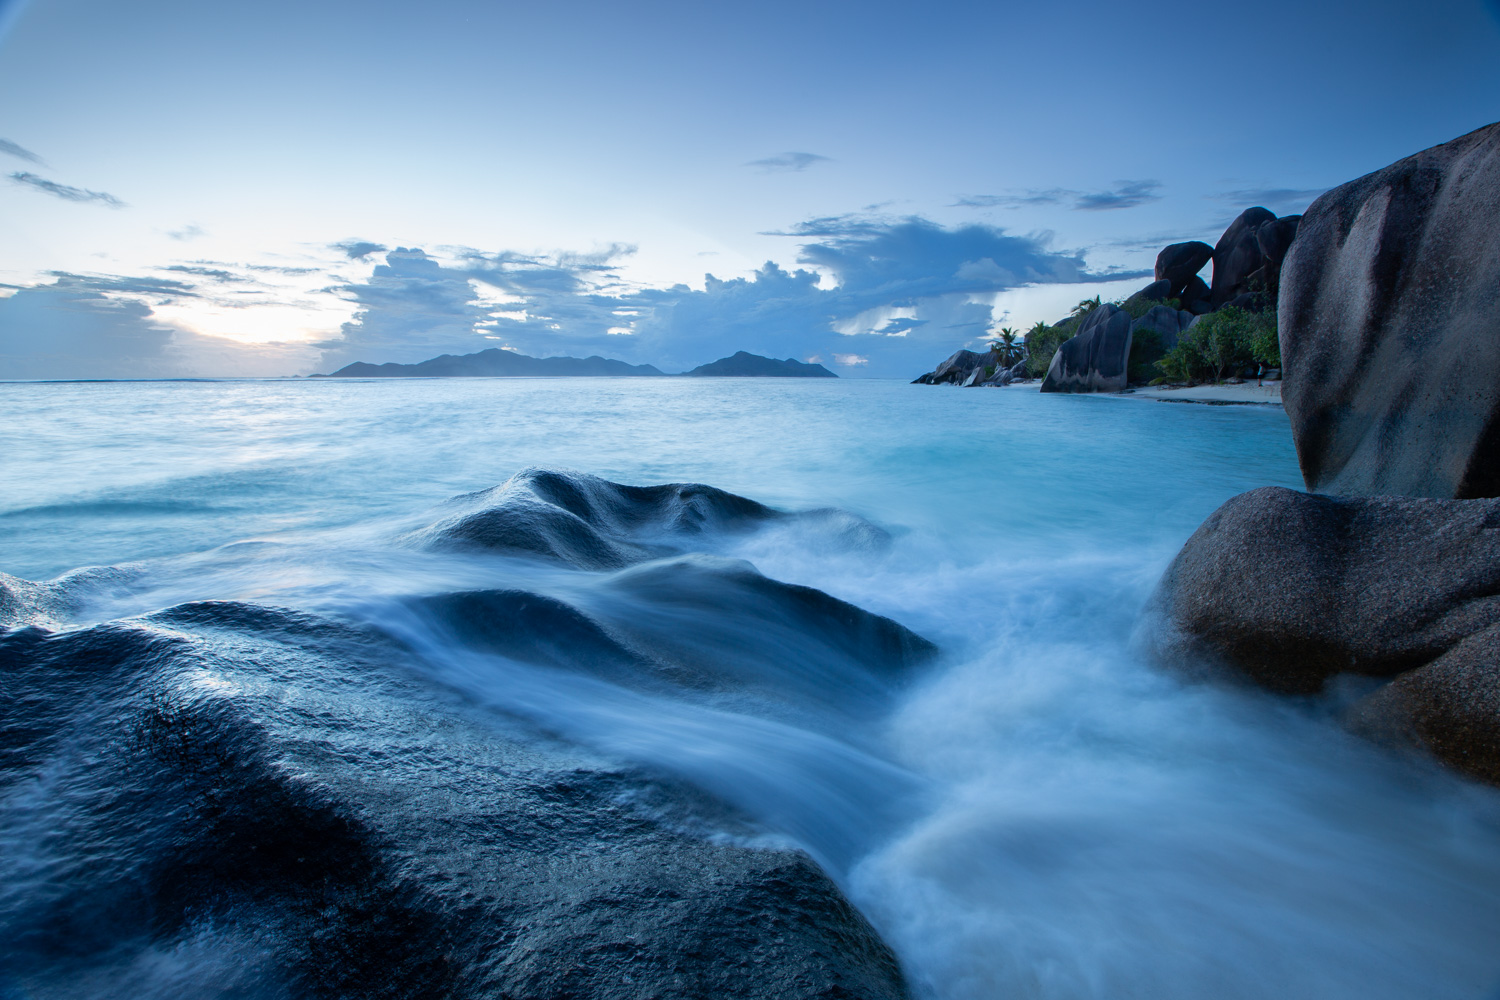 4 - 6 Ways to Capture Coastal Scenes to add Impact to Your Photos